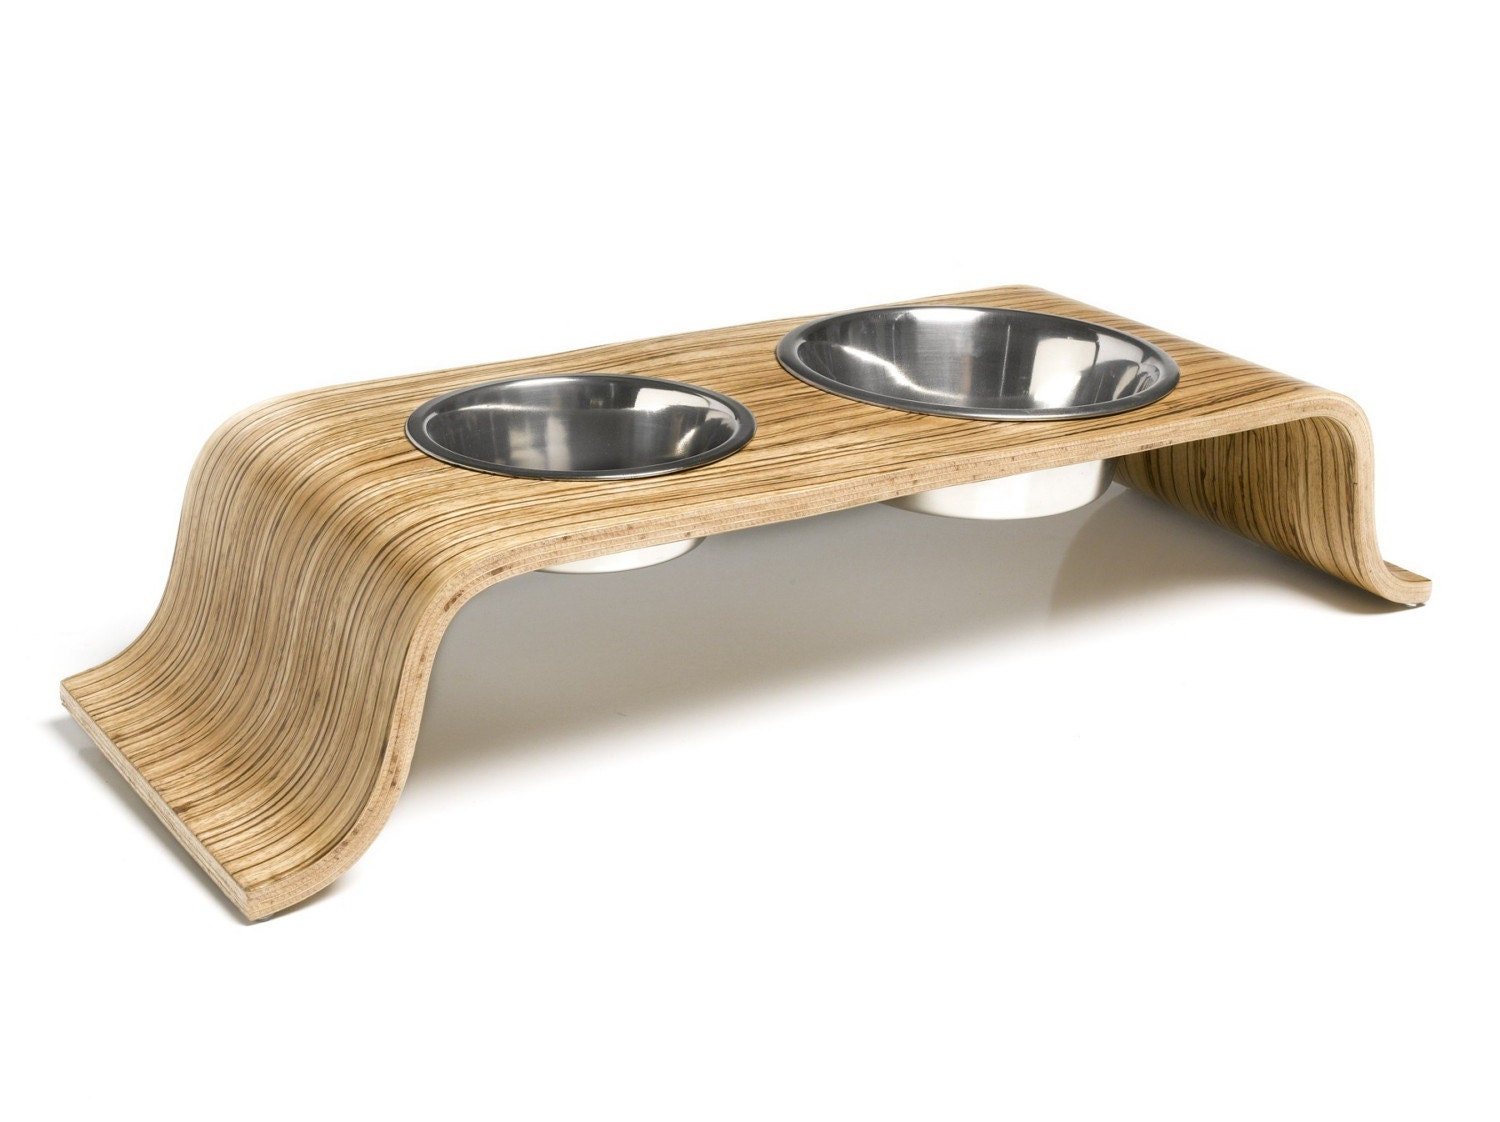 Big Bend Dog Bowl Holder - Zebrawood